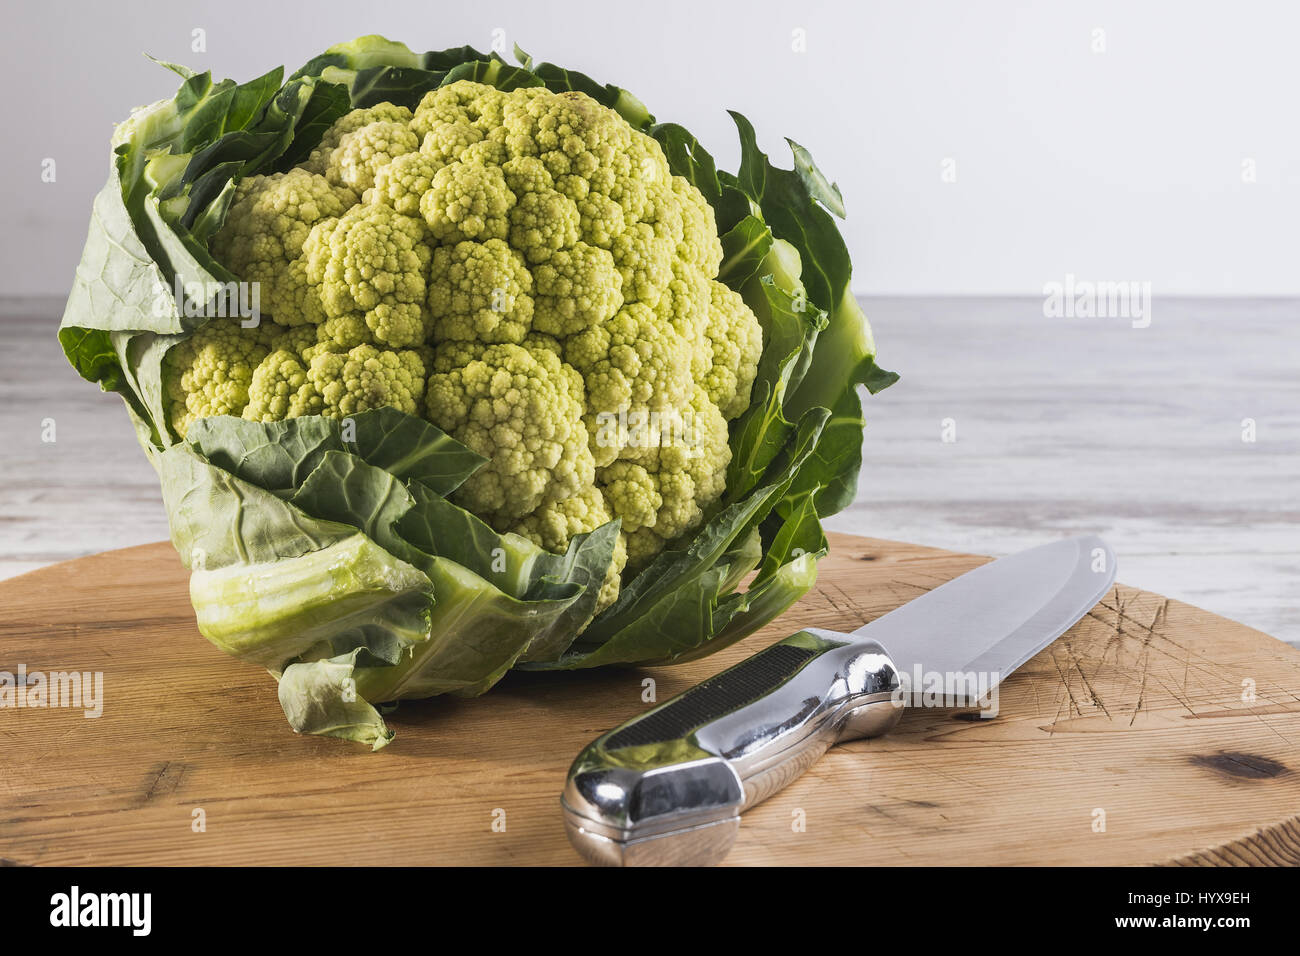 green cauliflower on a cutting board with knife - Stock Image